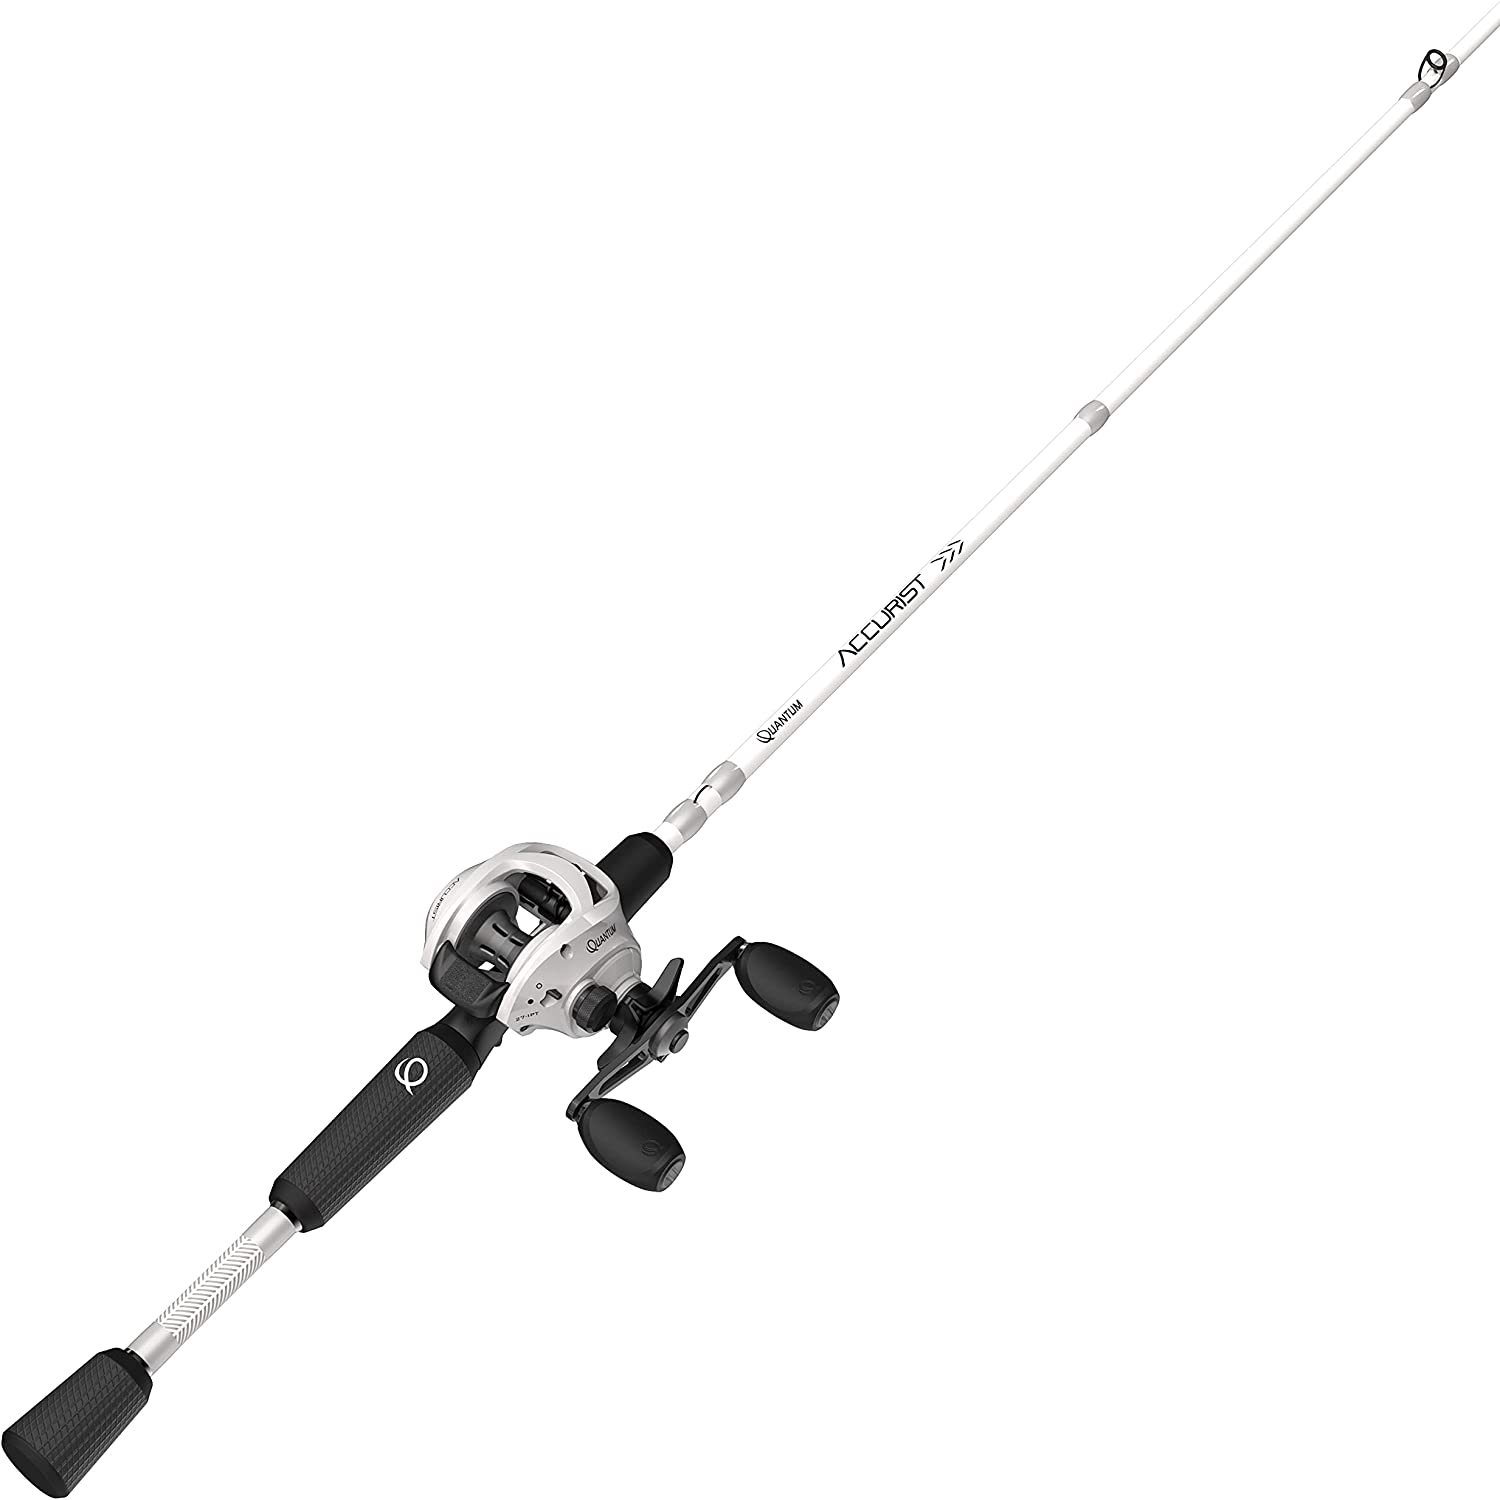 service Quantum Accurist Baitcast Reel and 1-P Online limited product Fishing Combo Rod 7-Foot